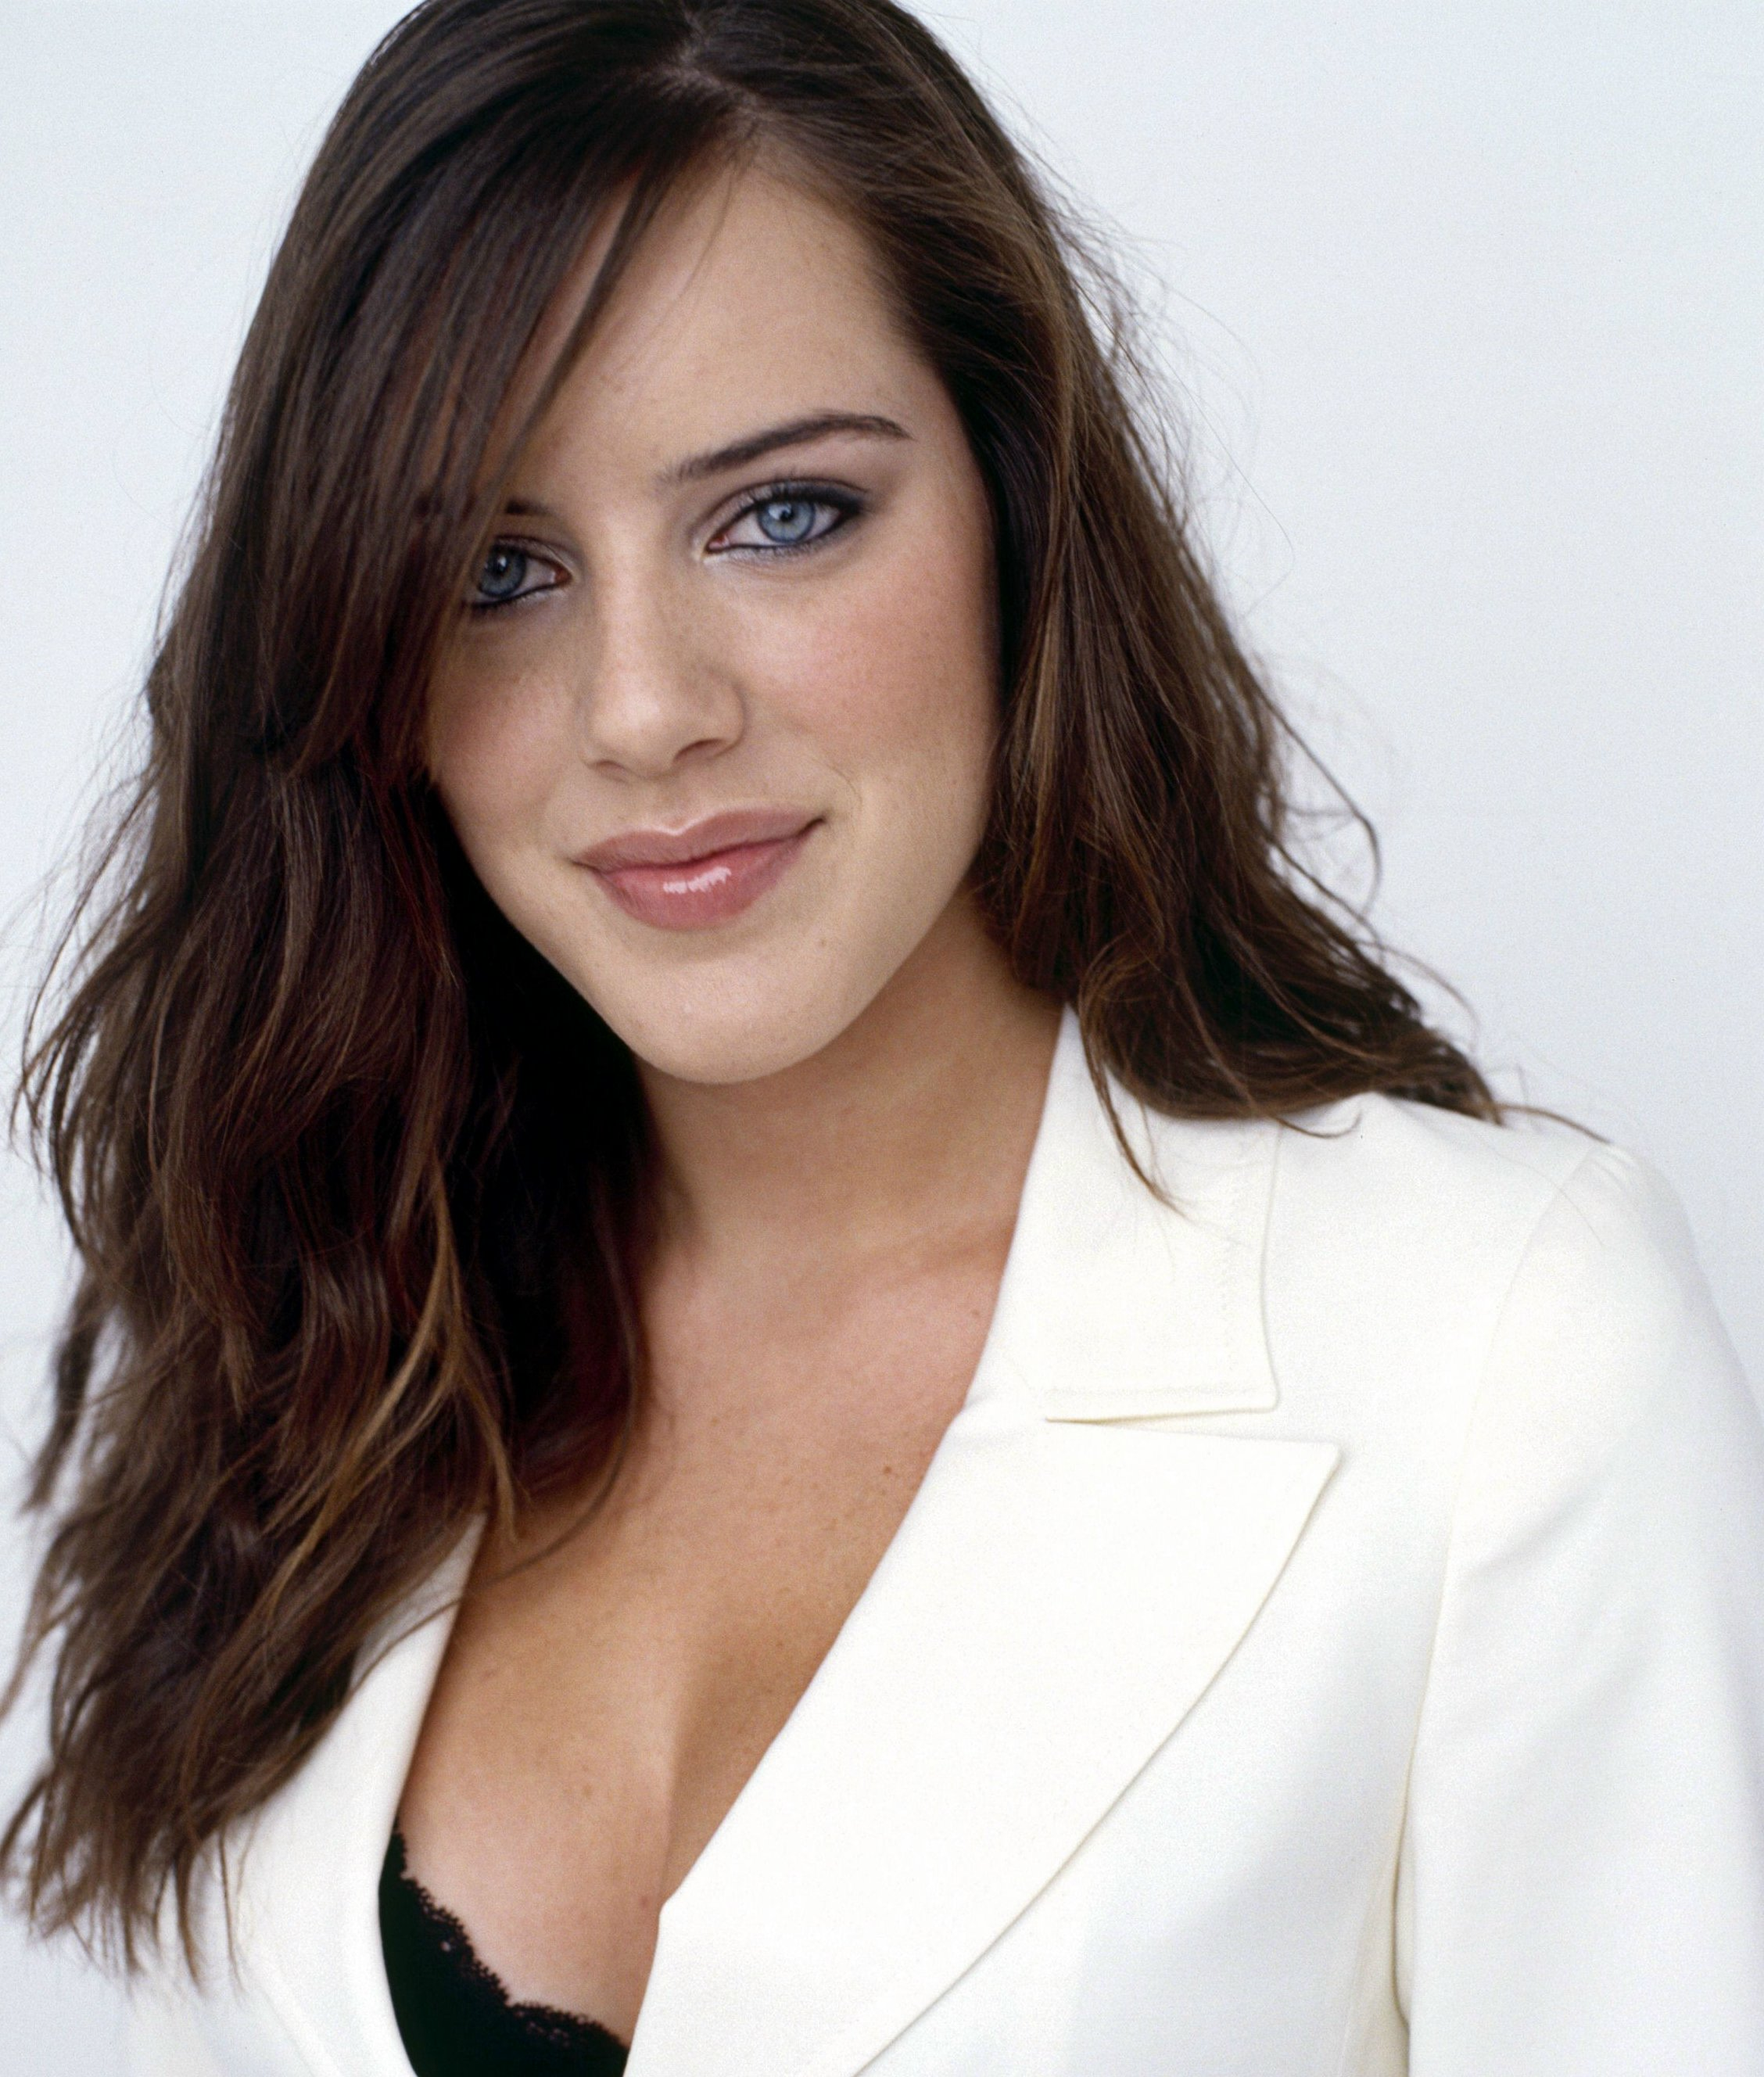 Michelle Ryan photo #163823